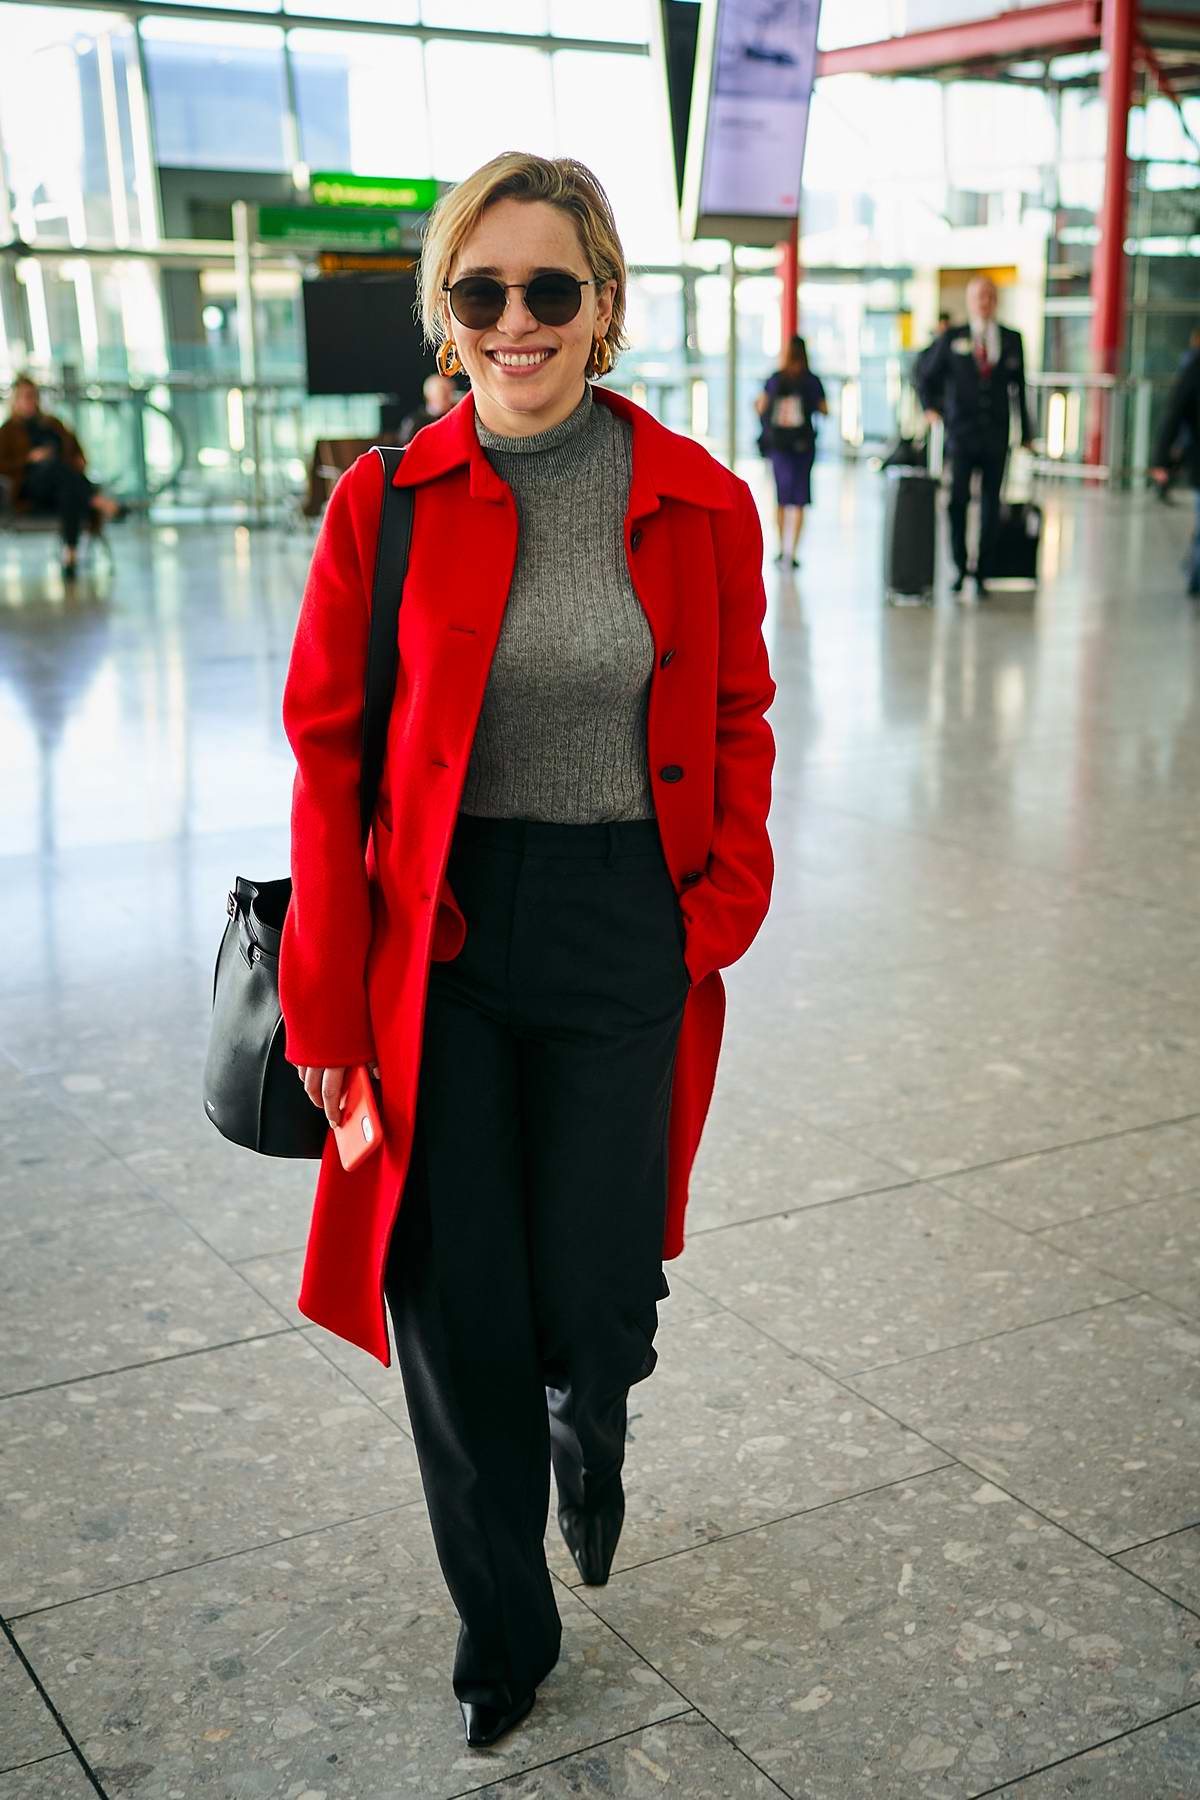 Emilia Clarke is all smiles as she flies out of Heathrow Airport in London, UK